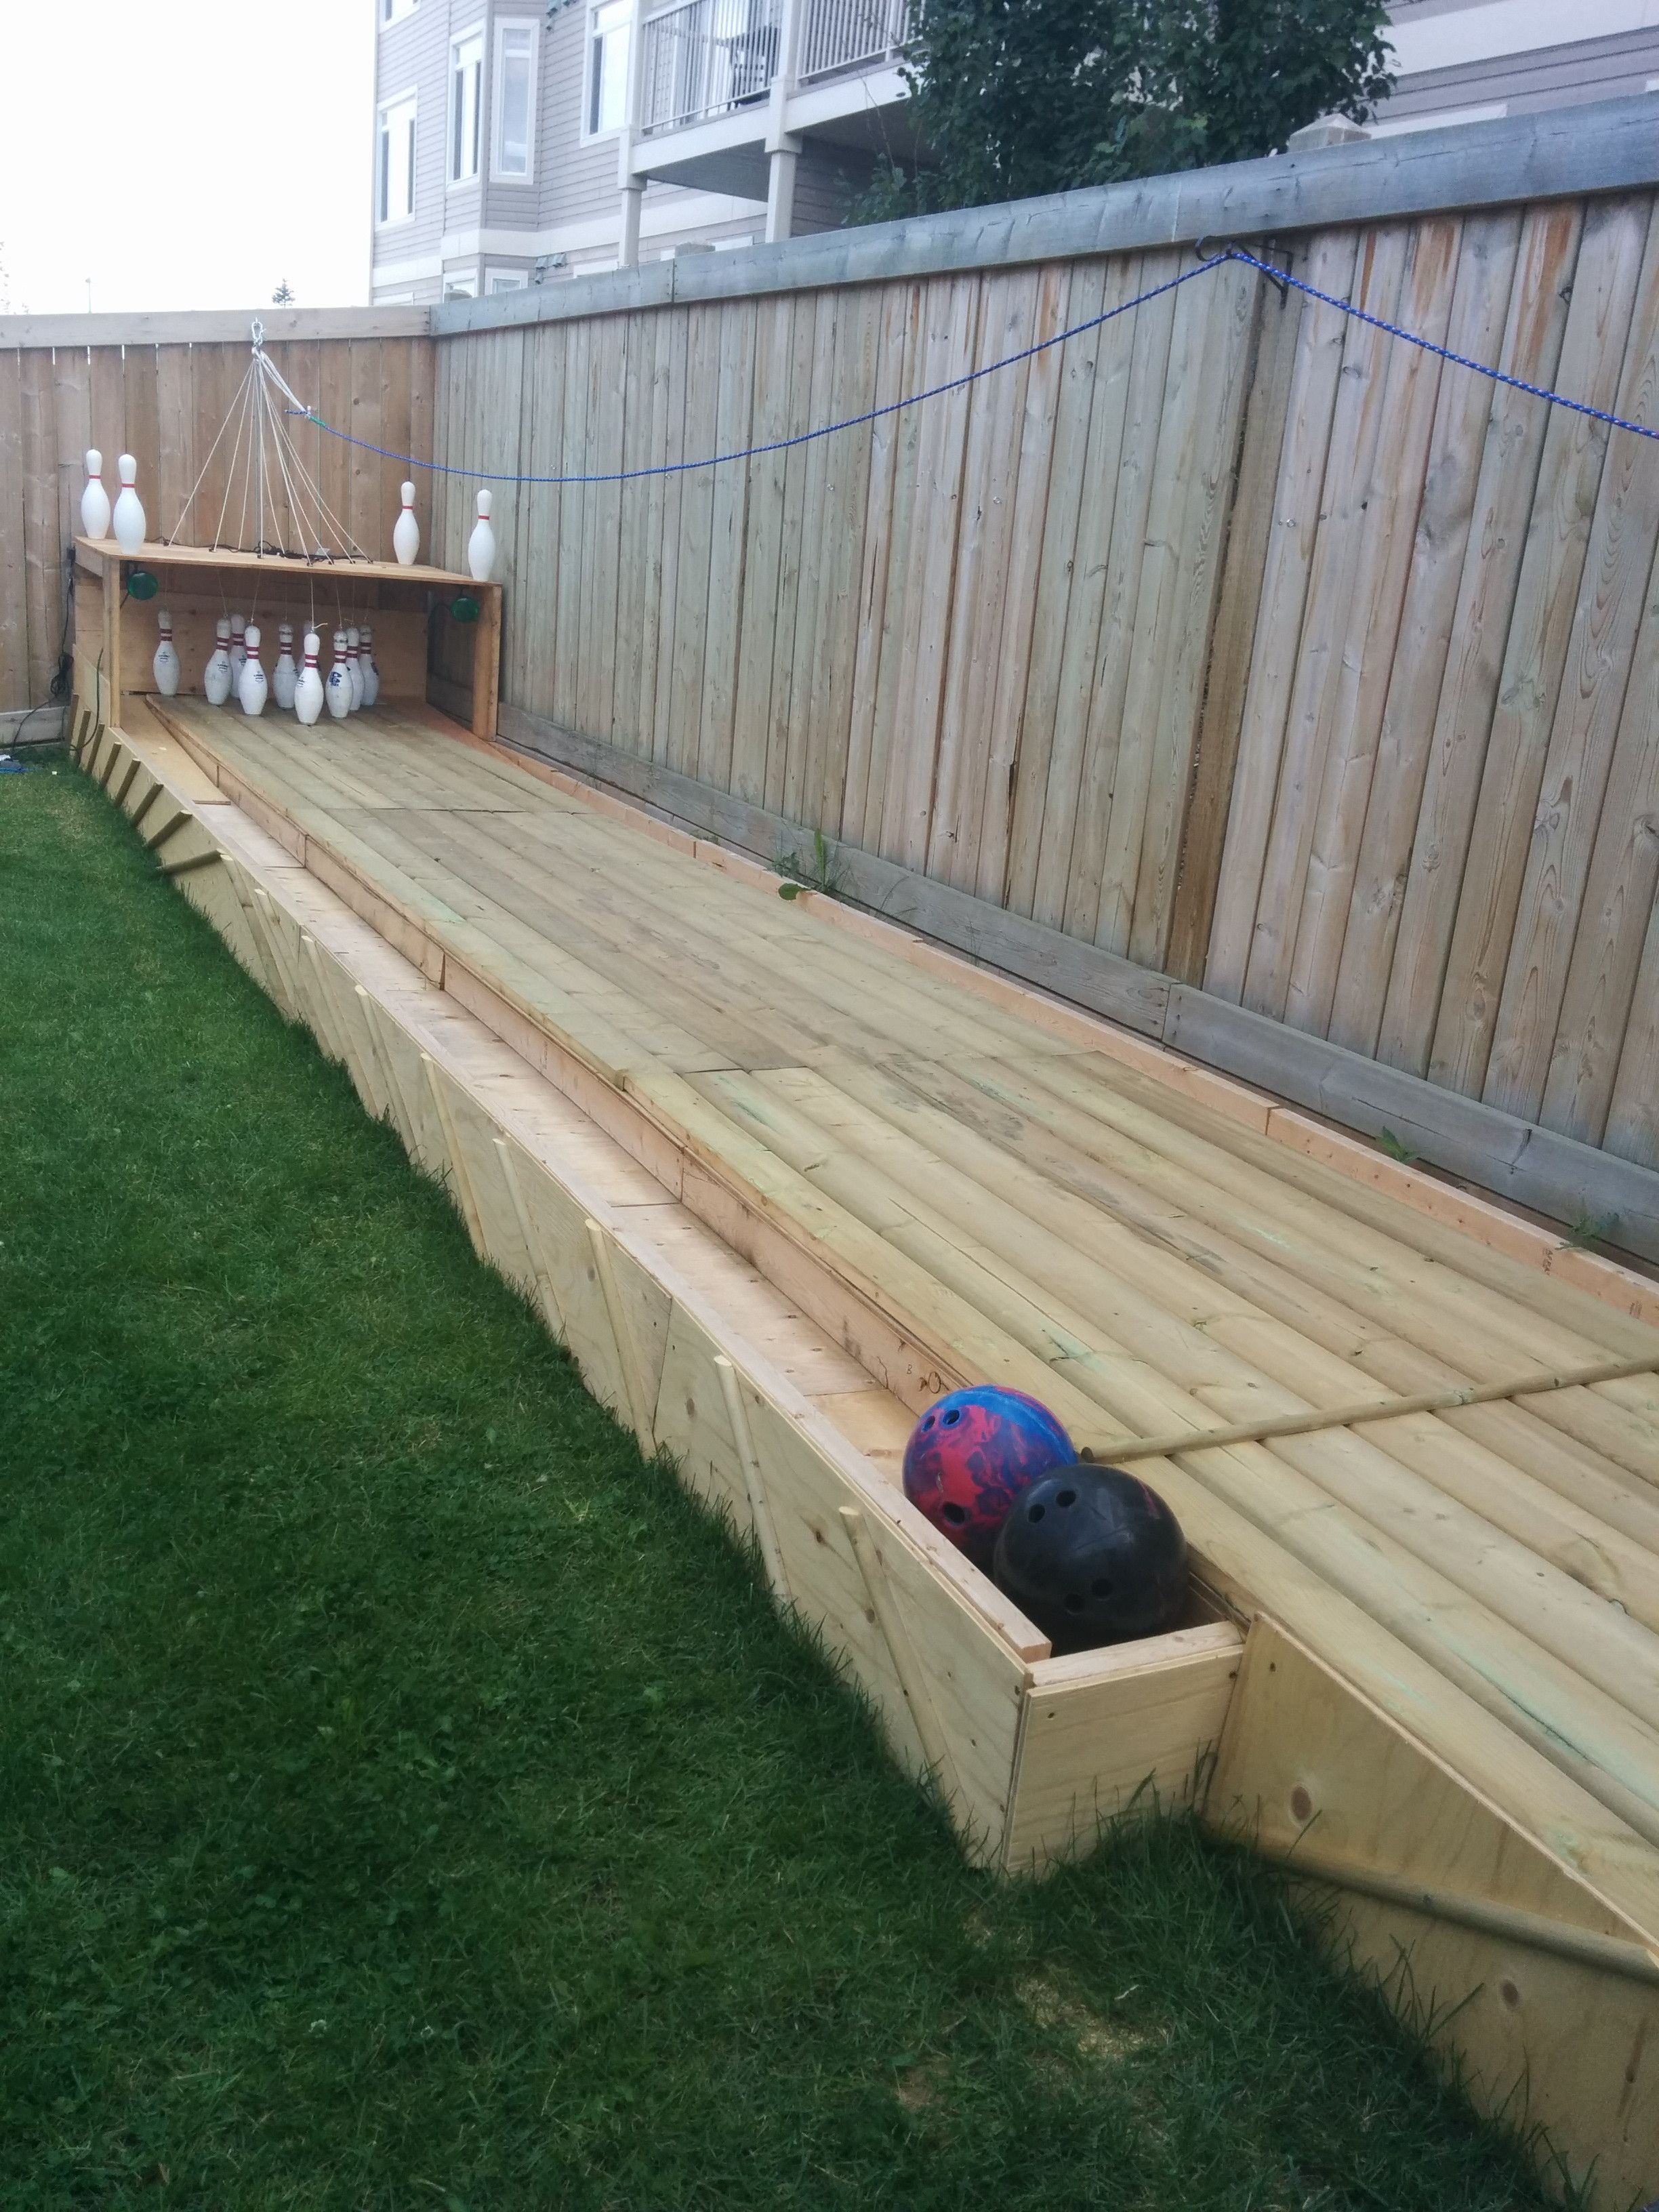 18 Backyard DIY Ideas That Are the Envy of Your Neighborhood